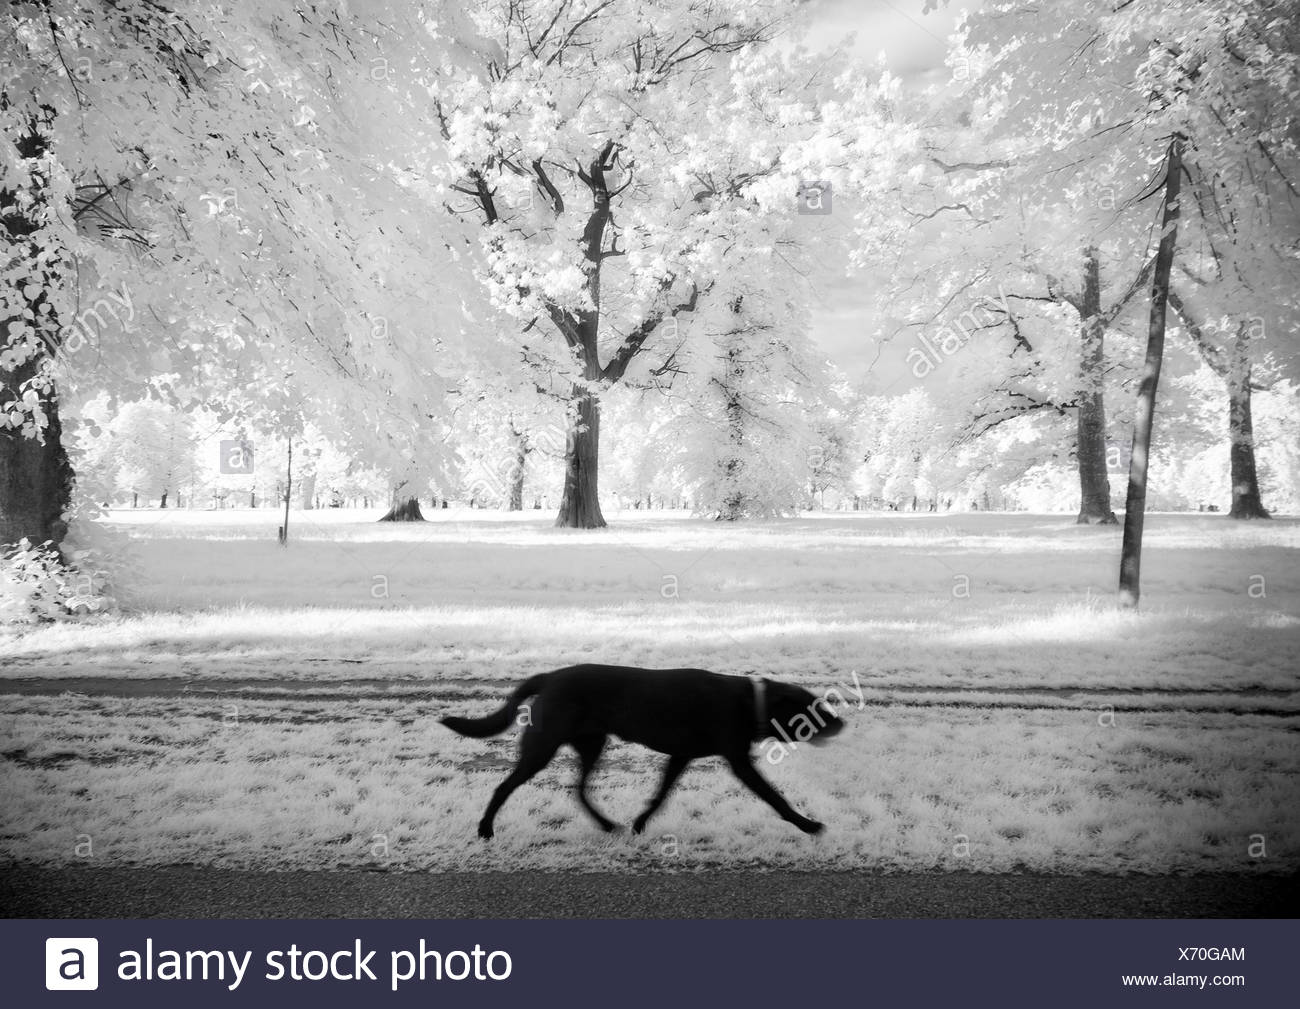 A black dog walking in a park - Stock Image